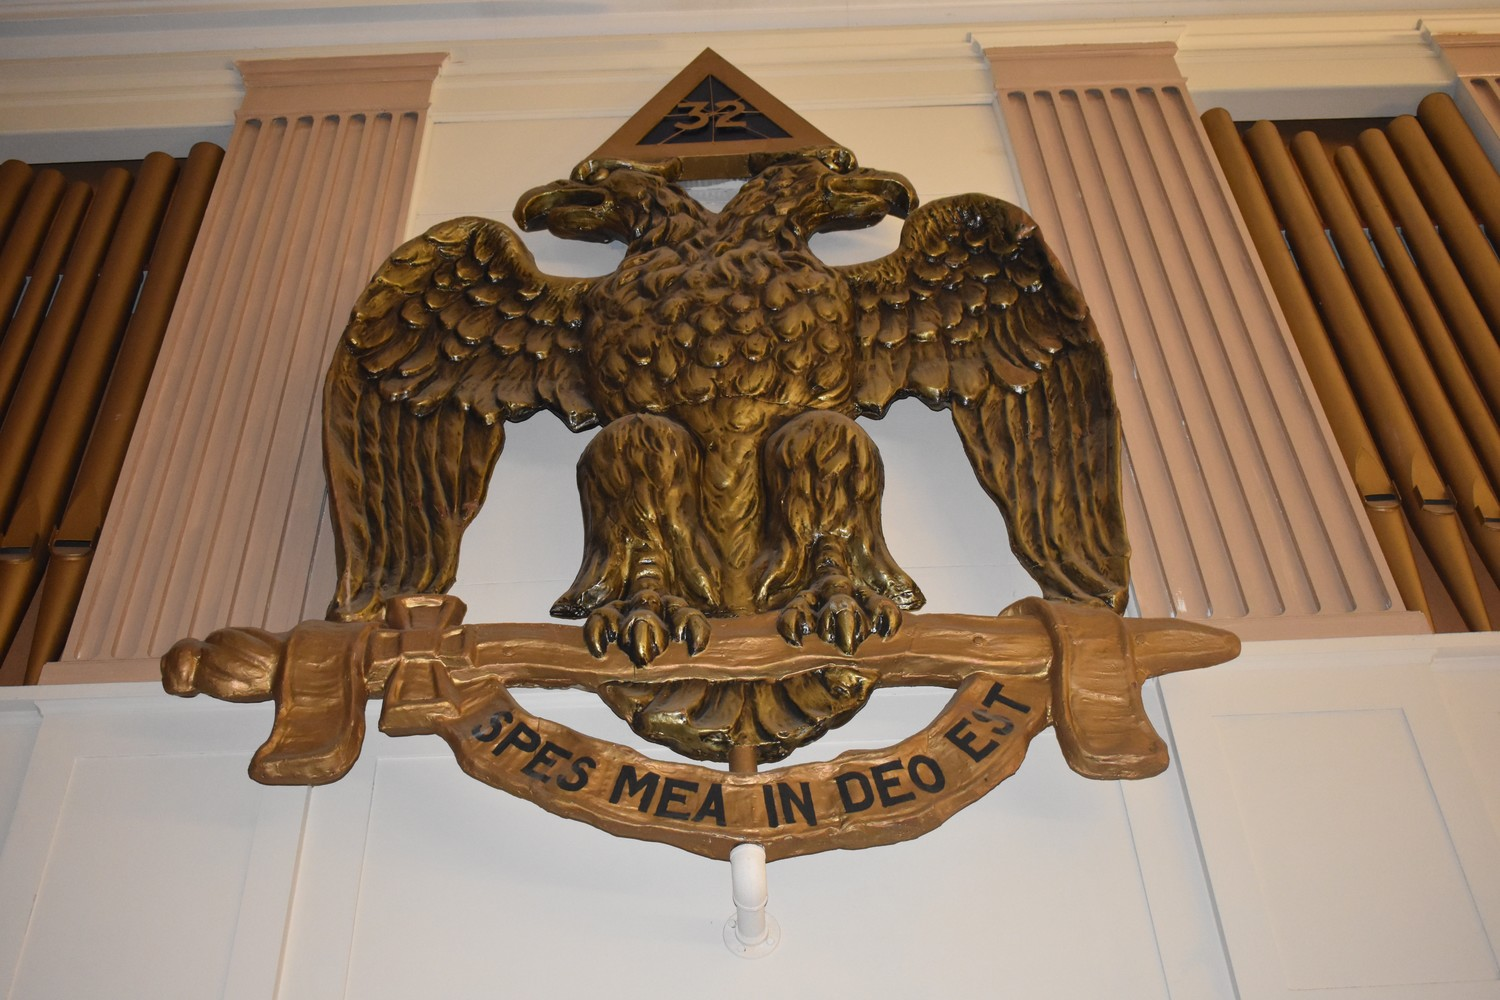 The double-headed Eagle of Lagash is used as an emblem by the Scottish Rite of Freemasonry.